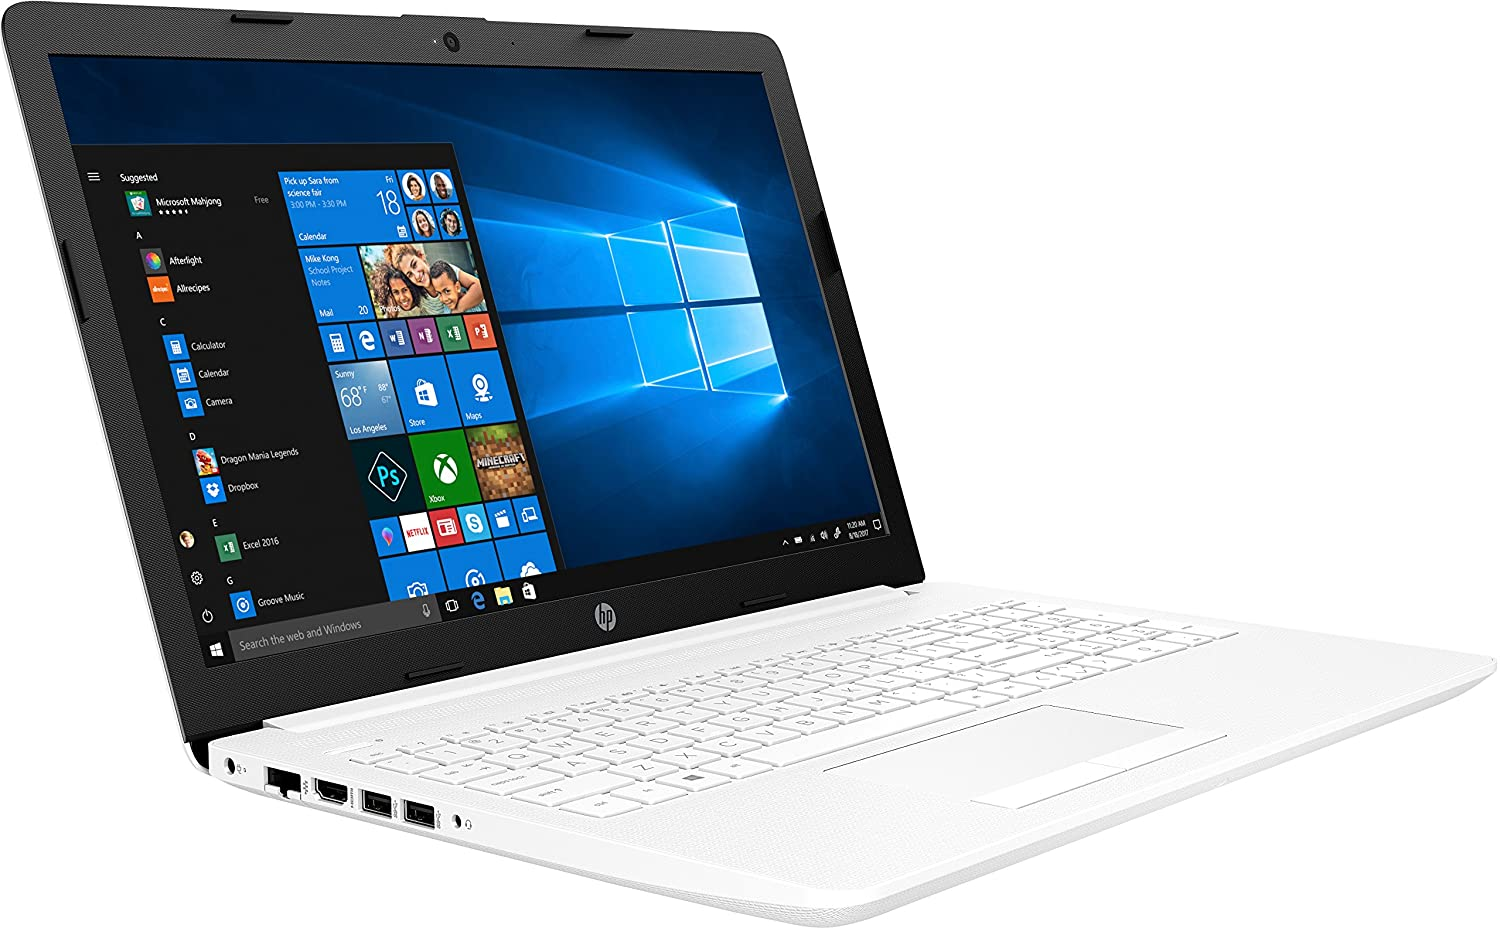 PORTÁTIL HP 15-DA0023NS - I3-7020U 2.3GHZ - 8GB - 500GB - 15.6/39.6CM - DVD RW - HDMI - WiFi BGN - BT - W10 - Blanco Nieve: Hp: Amazon.es: Informática